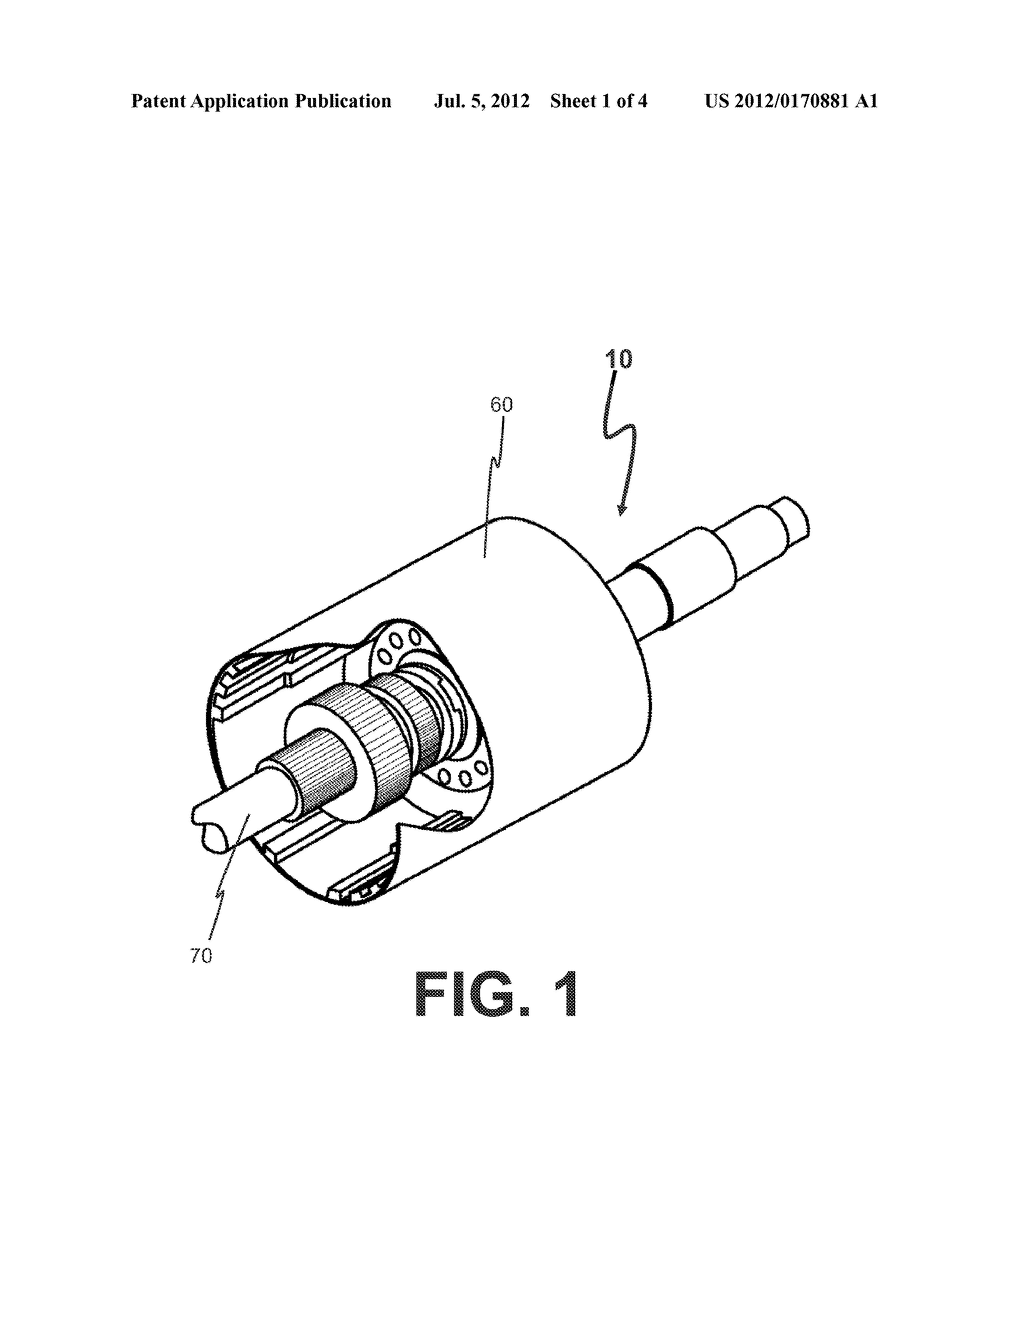 hight resolution of gm automatic transmission 700r4 through 4l70e increase in input shaft bearing surface area on rear stator bushing diagram schematic and image 02